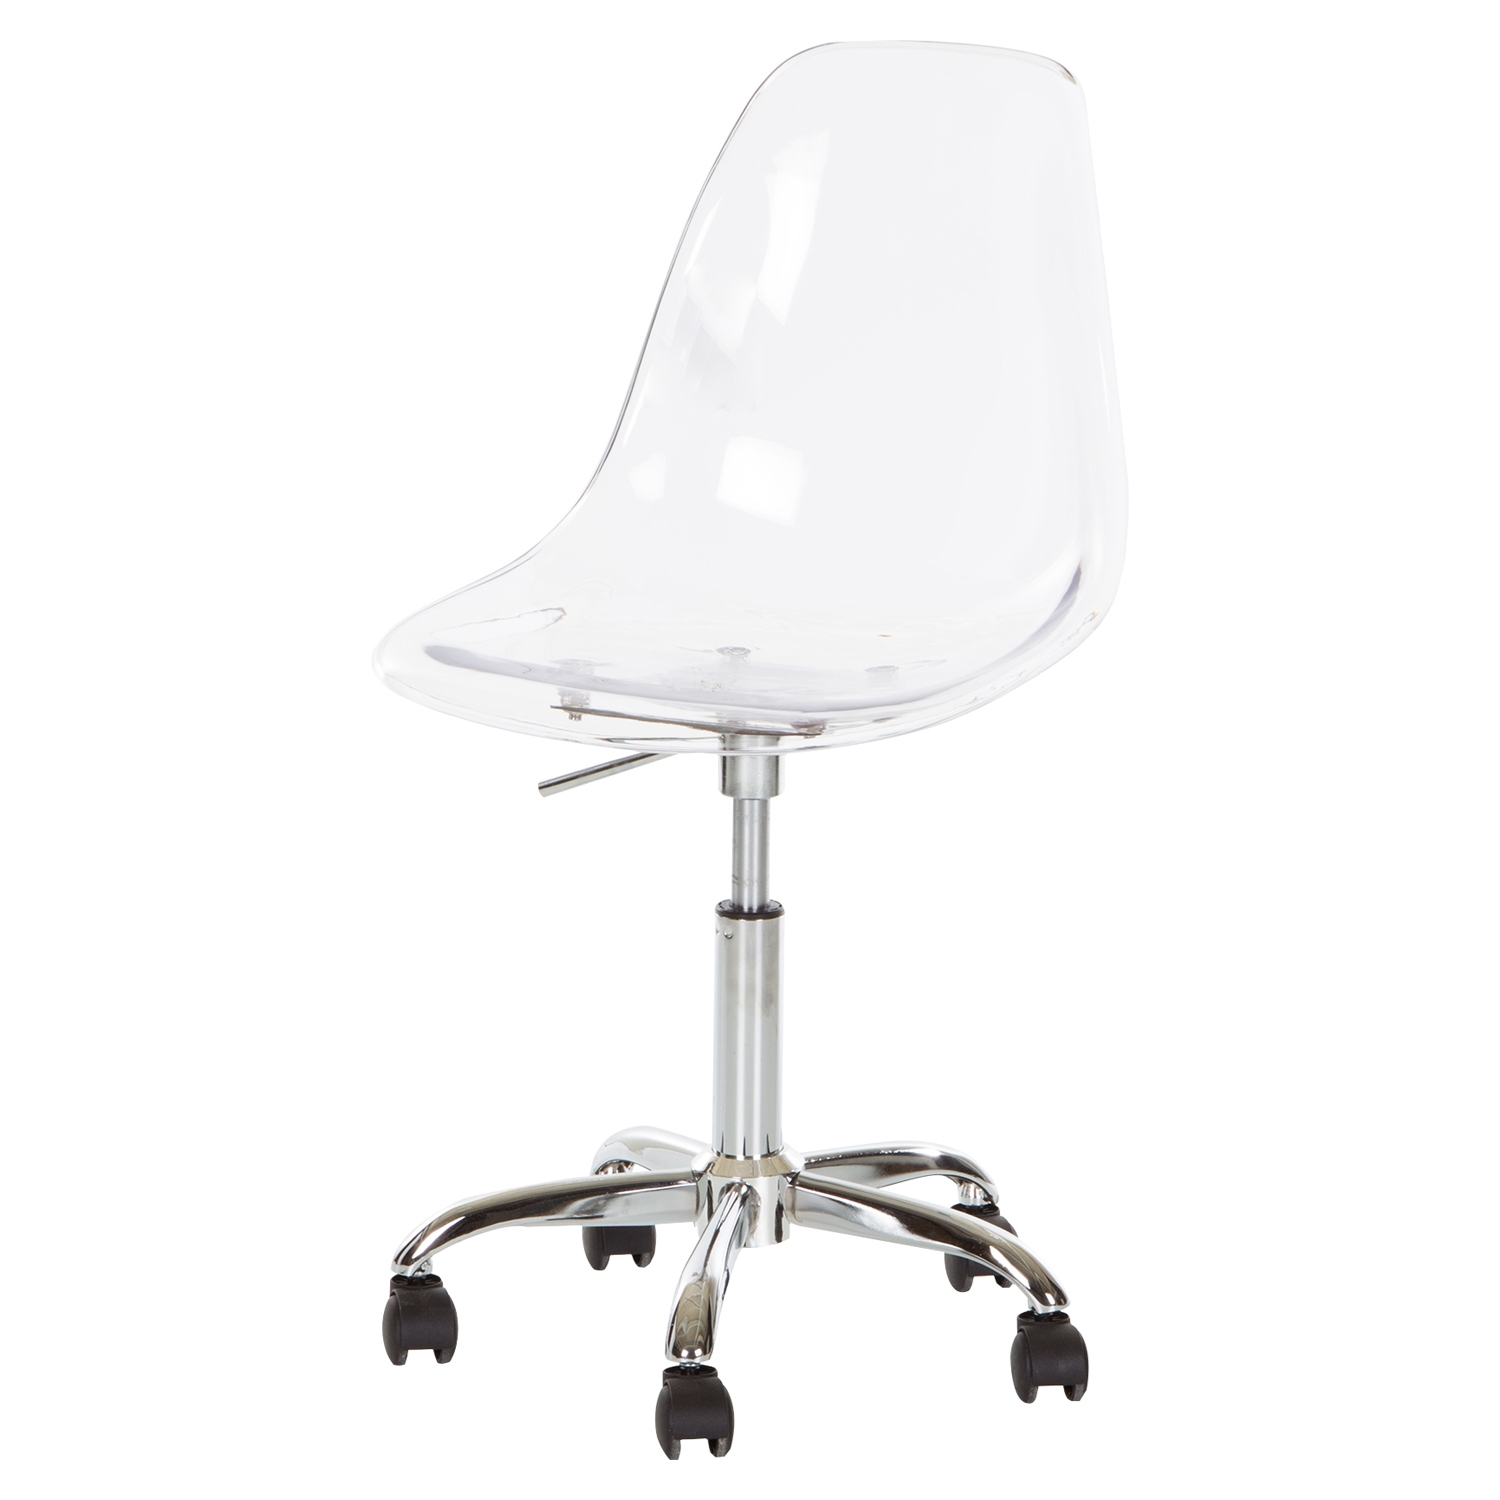 Clear Acrylic Office Chair Wheels Dcg Stores